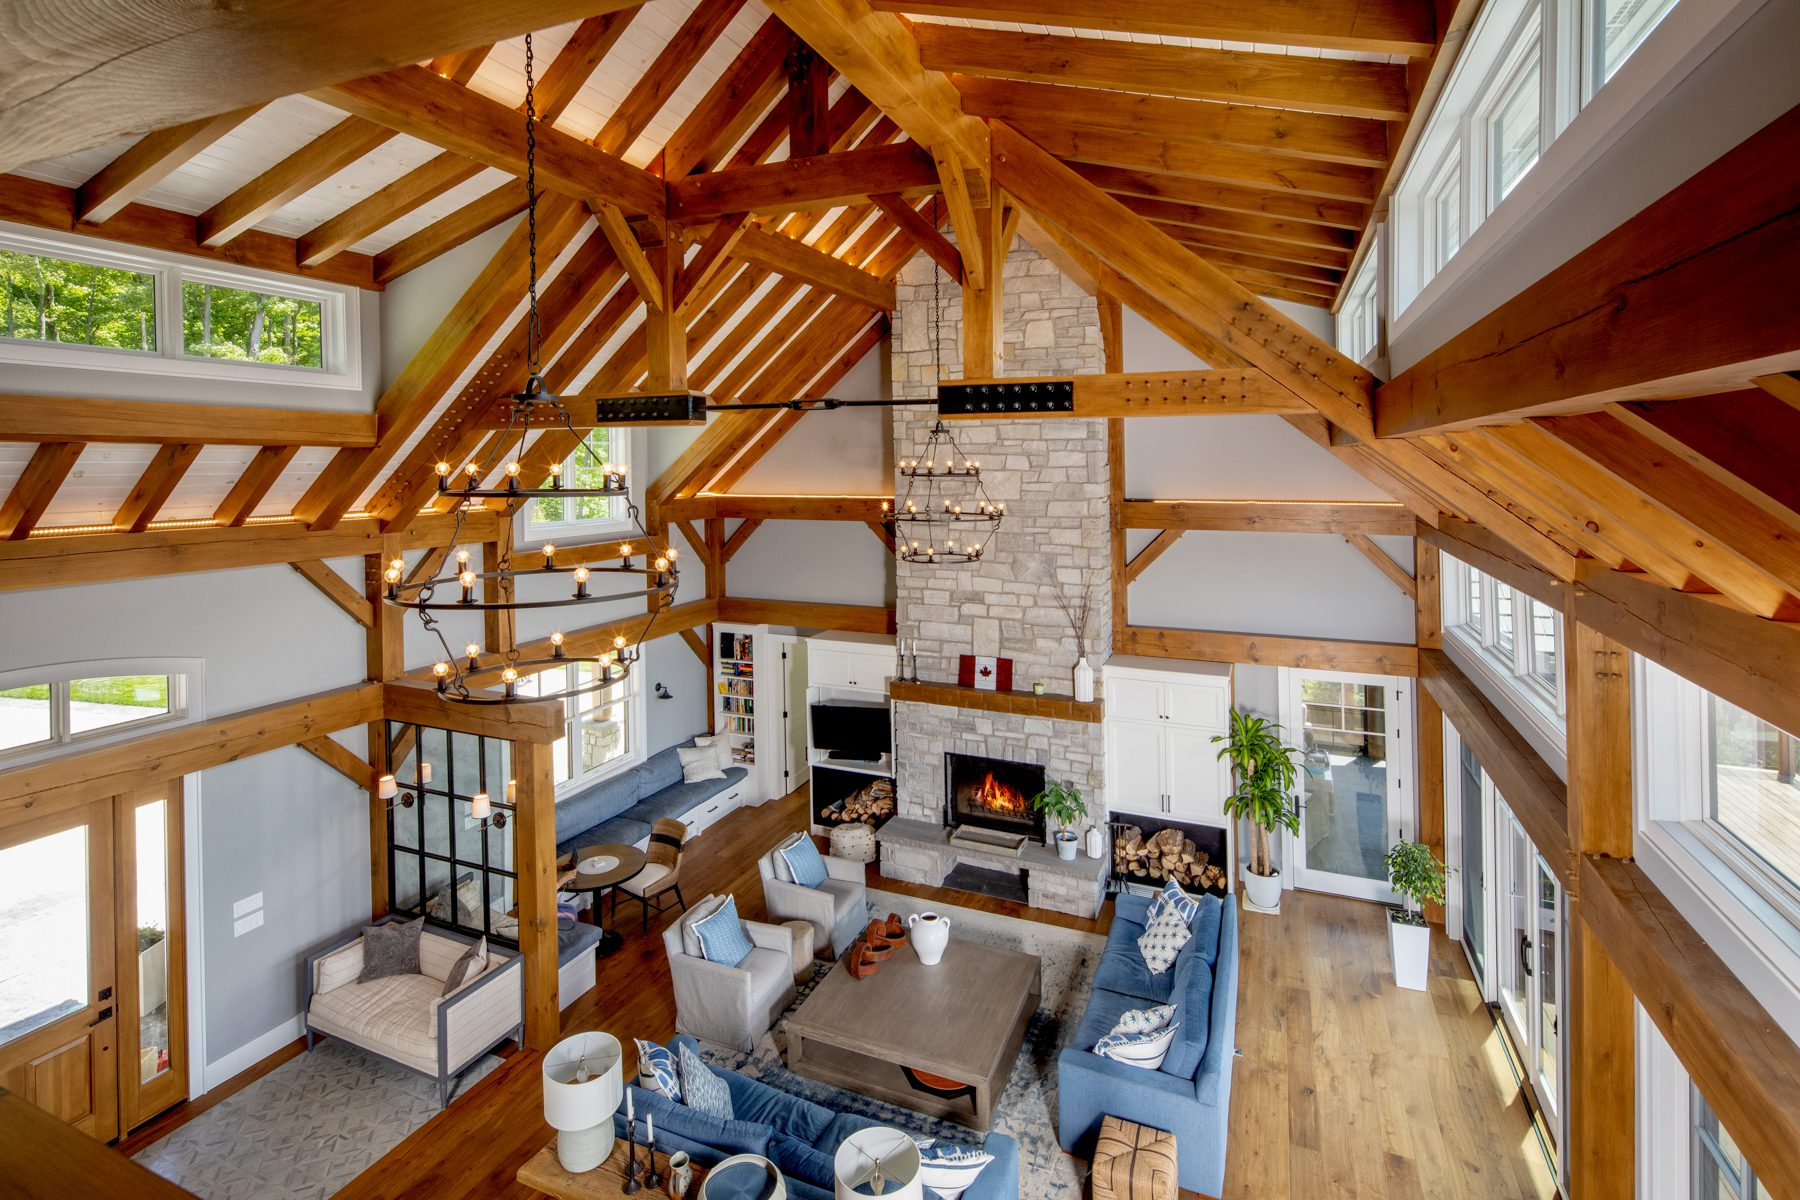 Normerica-Timber-Homes-Timber-Frame-Portfolio-Beachside-Bliss-Interior-View-to-Living-Room-from-Loft-Cathedral-Ceiling-Open-Concept